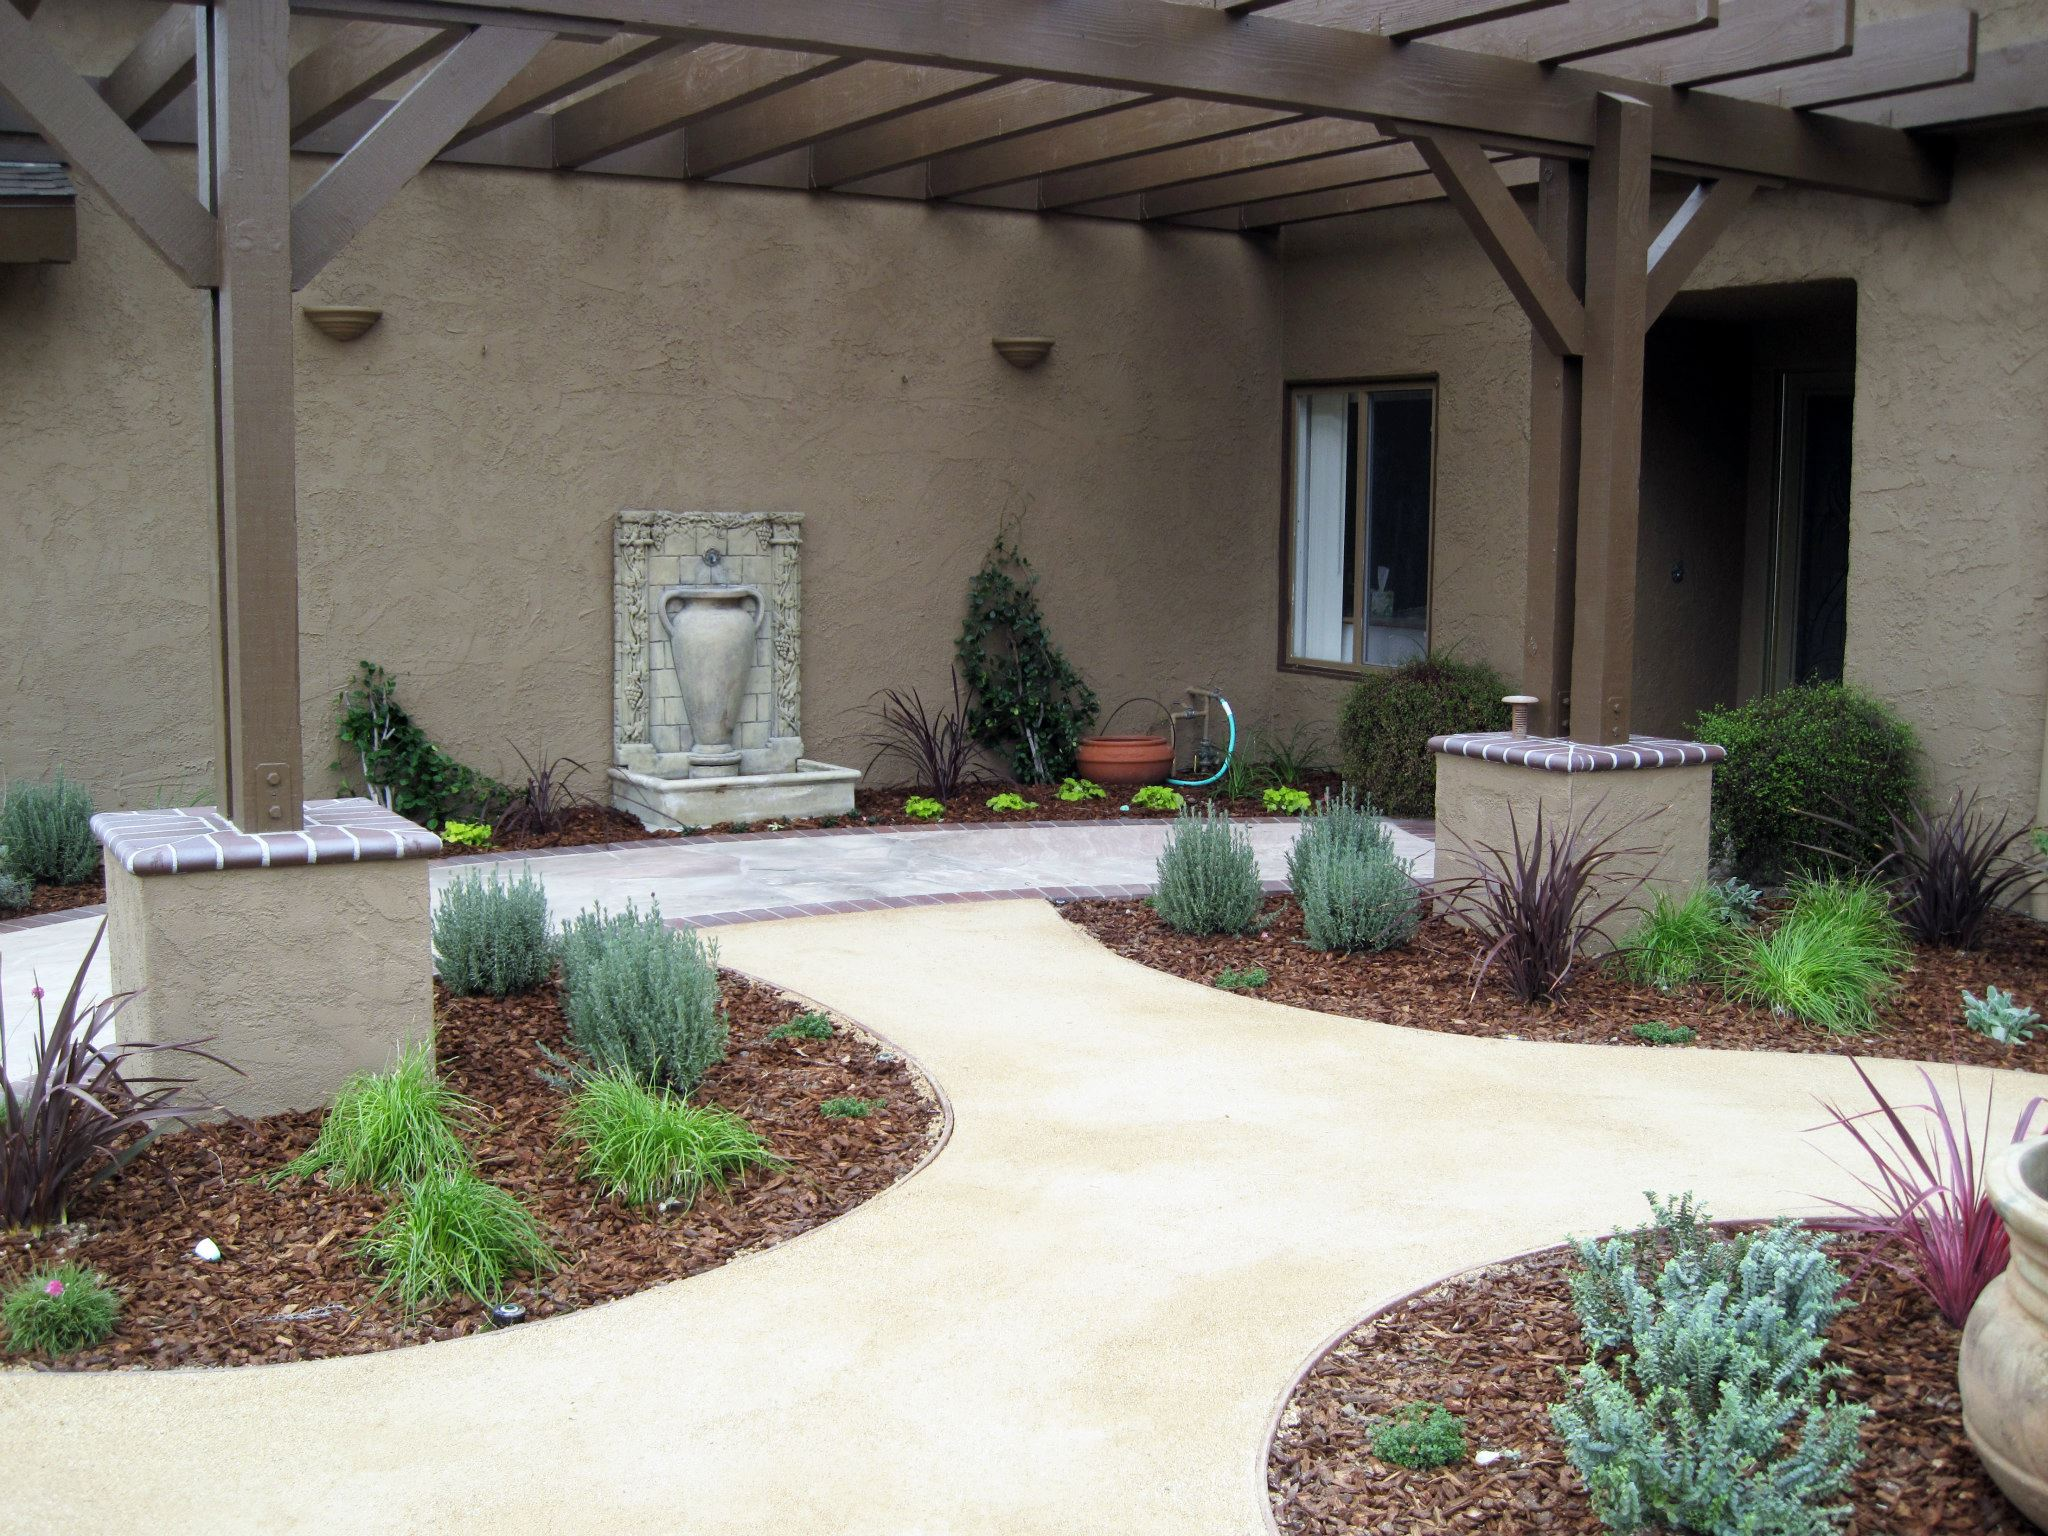 water-wise garden design by Armstrong Garden Centers